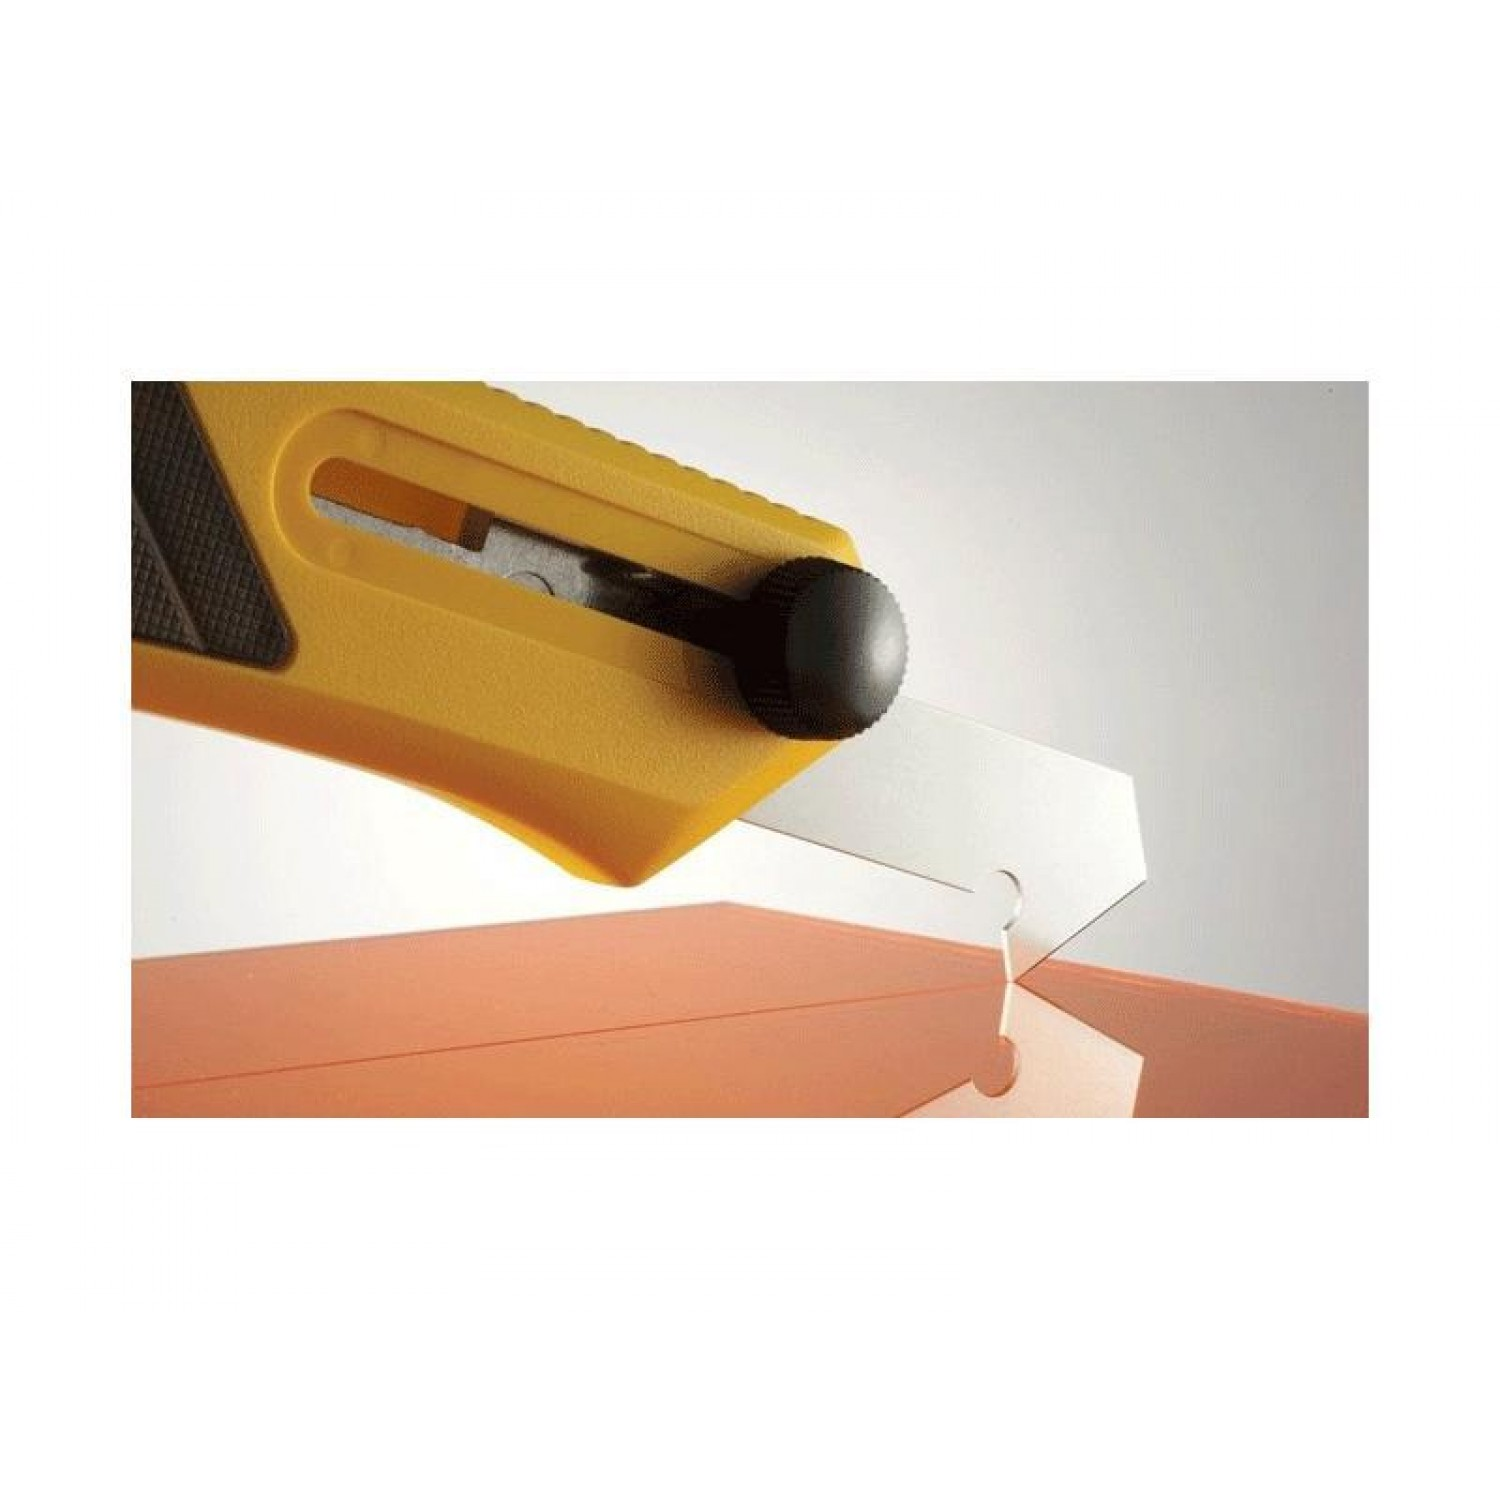 Olfa PC-L Plastic Laminate Cutter Alt Illustration